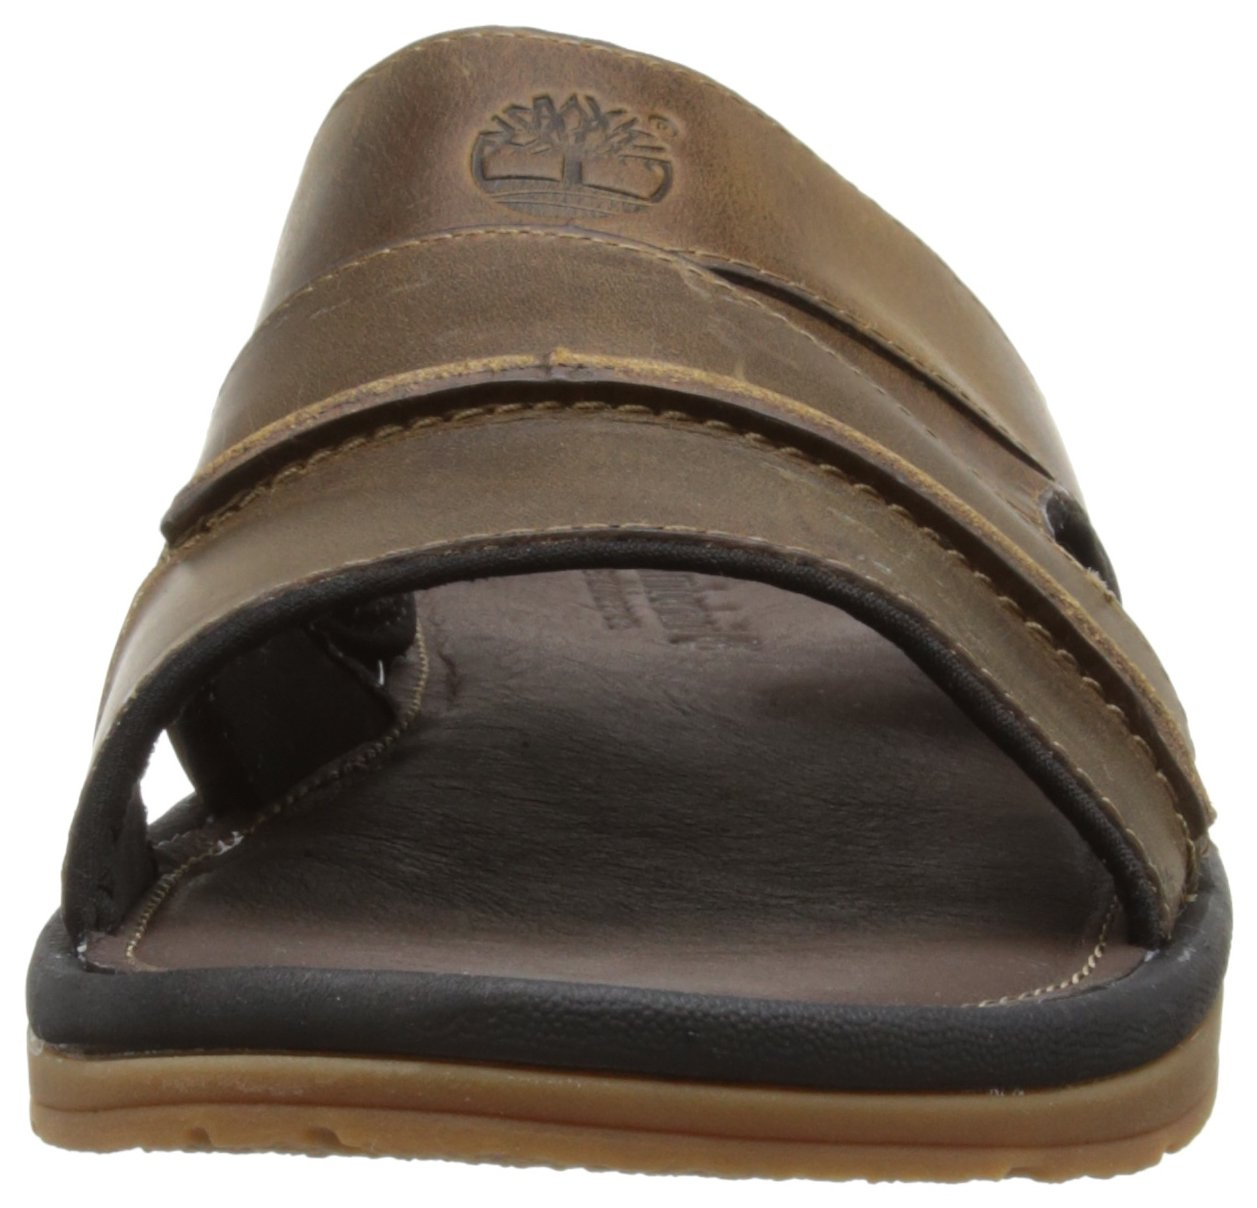 a07de4c4f4e1 Timberland Men s Earthkeepers Slide Fisherman Sandal - TB05342A001   Sandals    Clothing